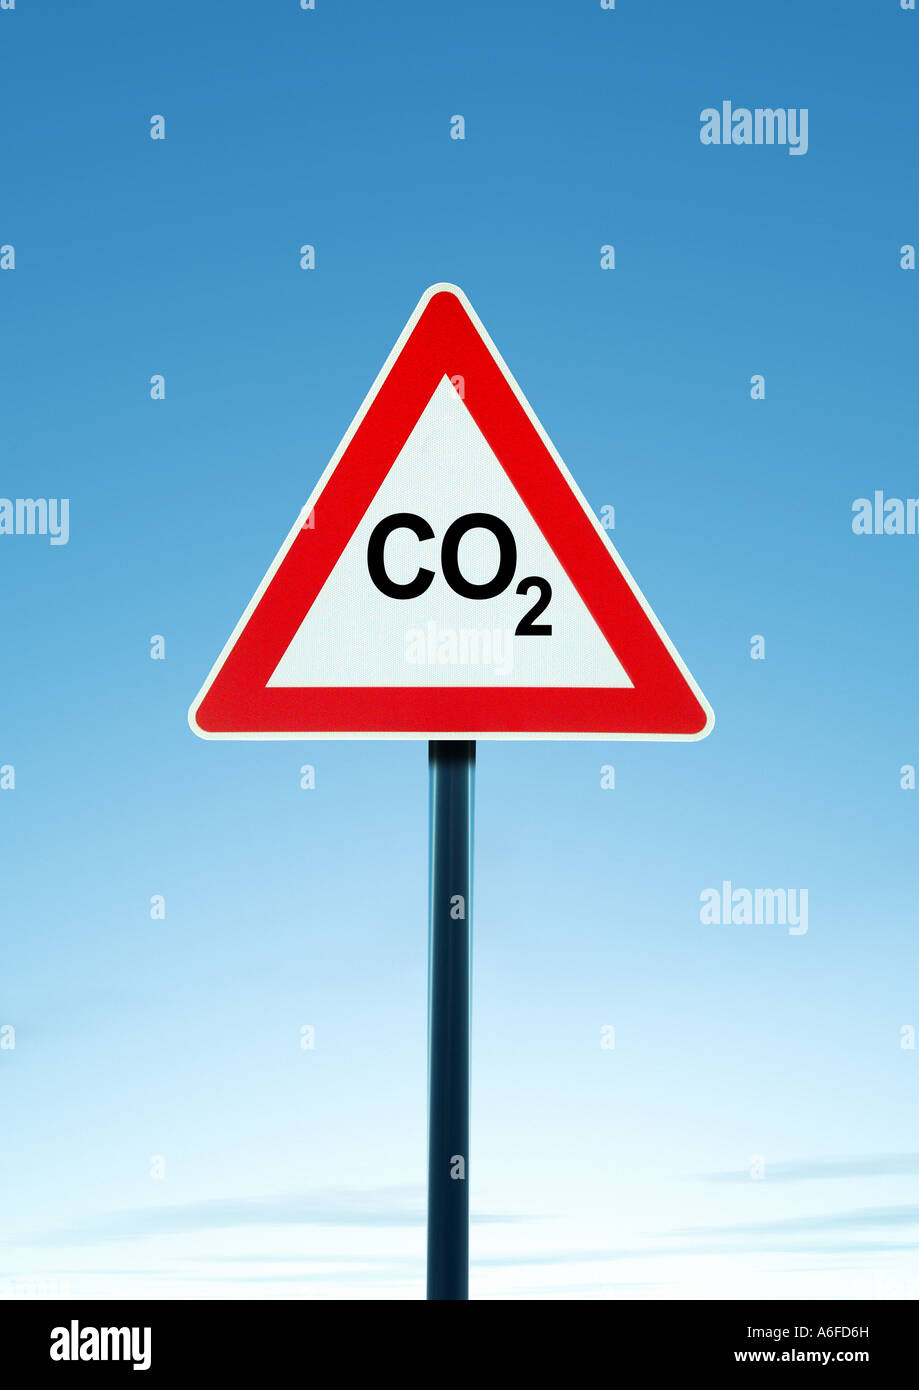 Warning CO2 Achtung CO2 - Stock Image